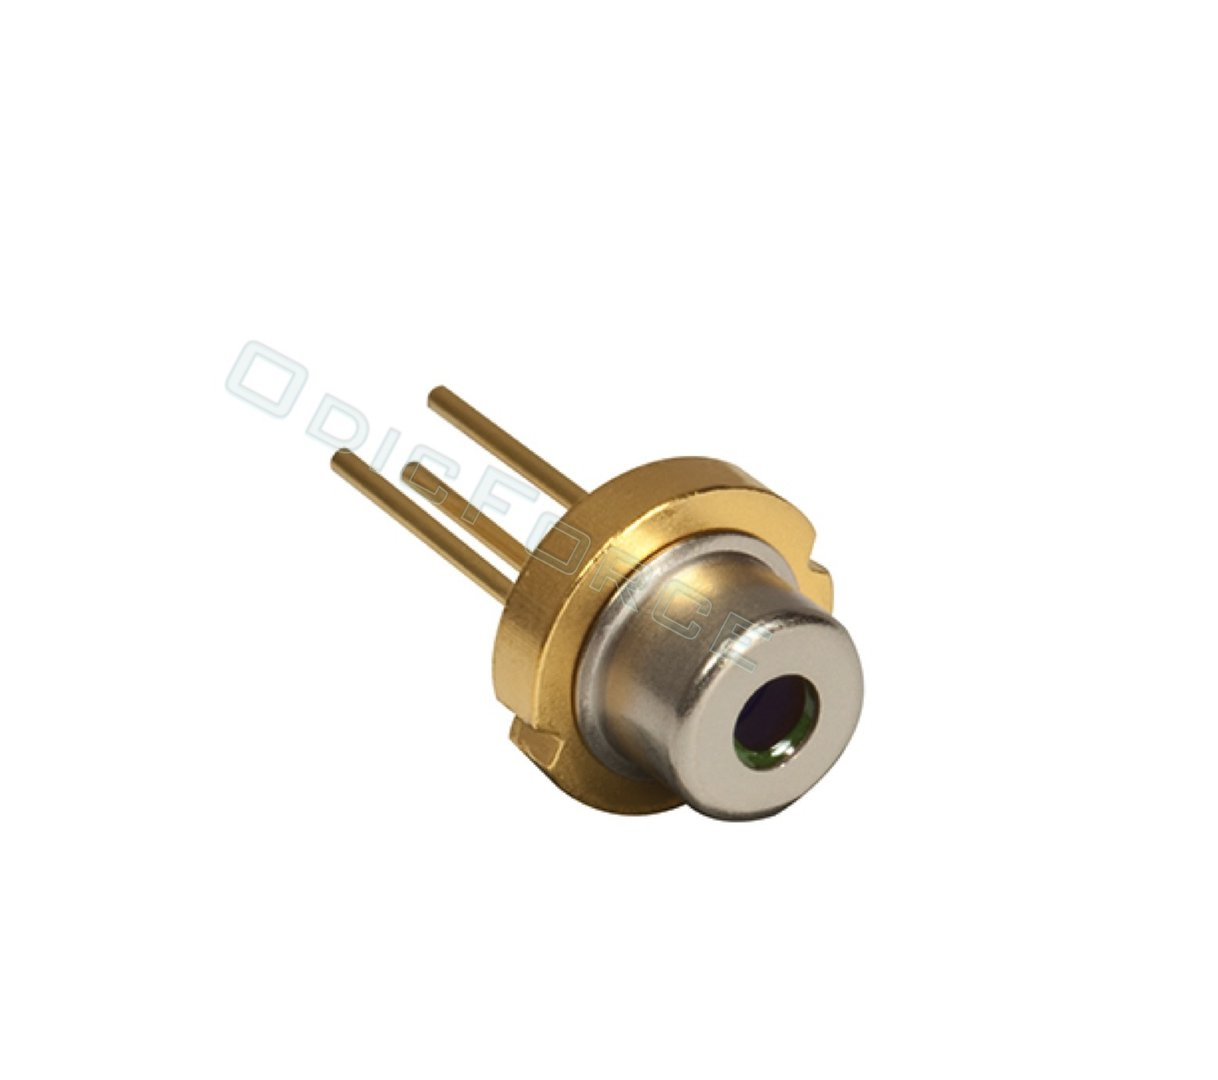 Rohm 10mW 650nm Red Laser Diode (TO56 5.6mm)